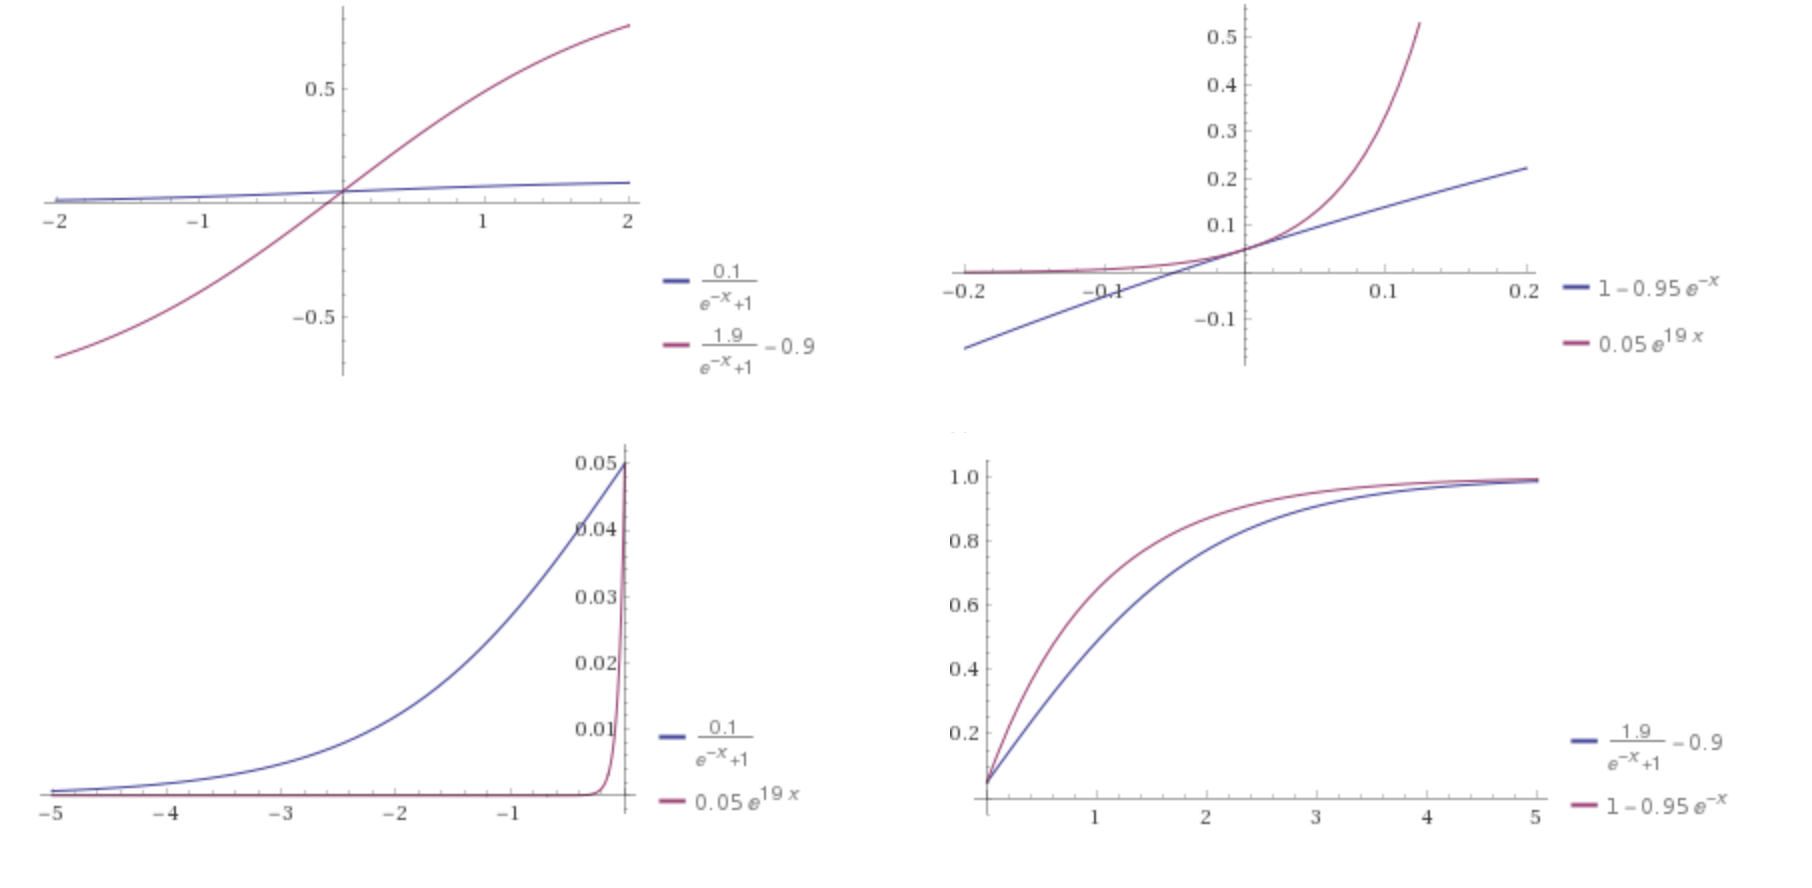 a modified version of sigmoid activation function